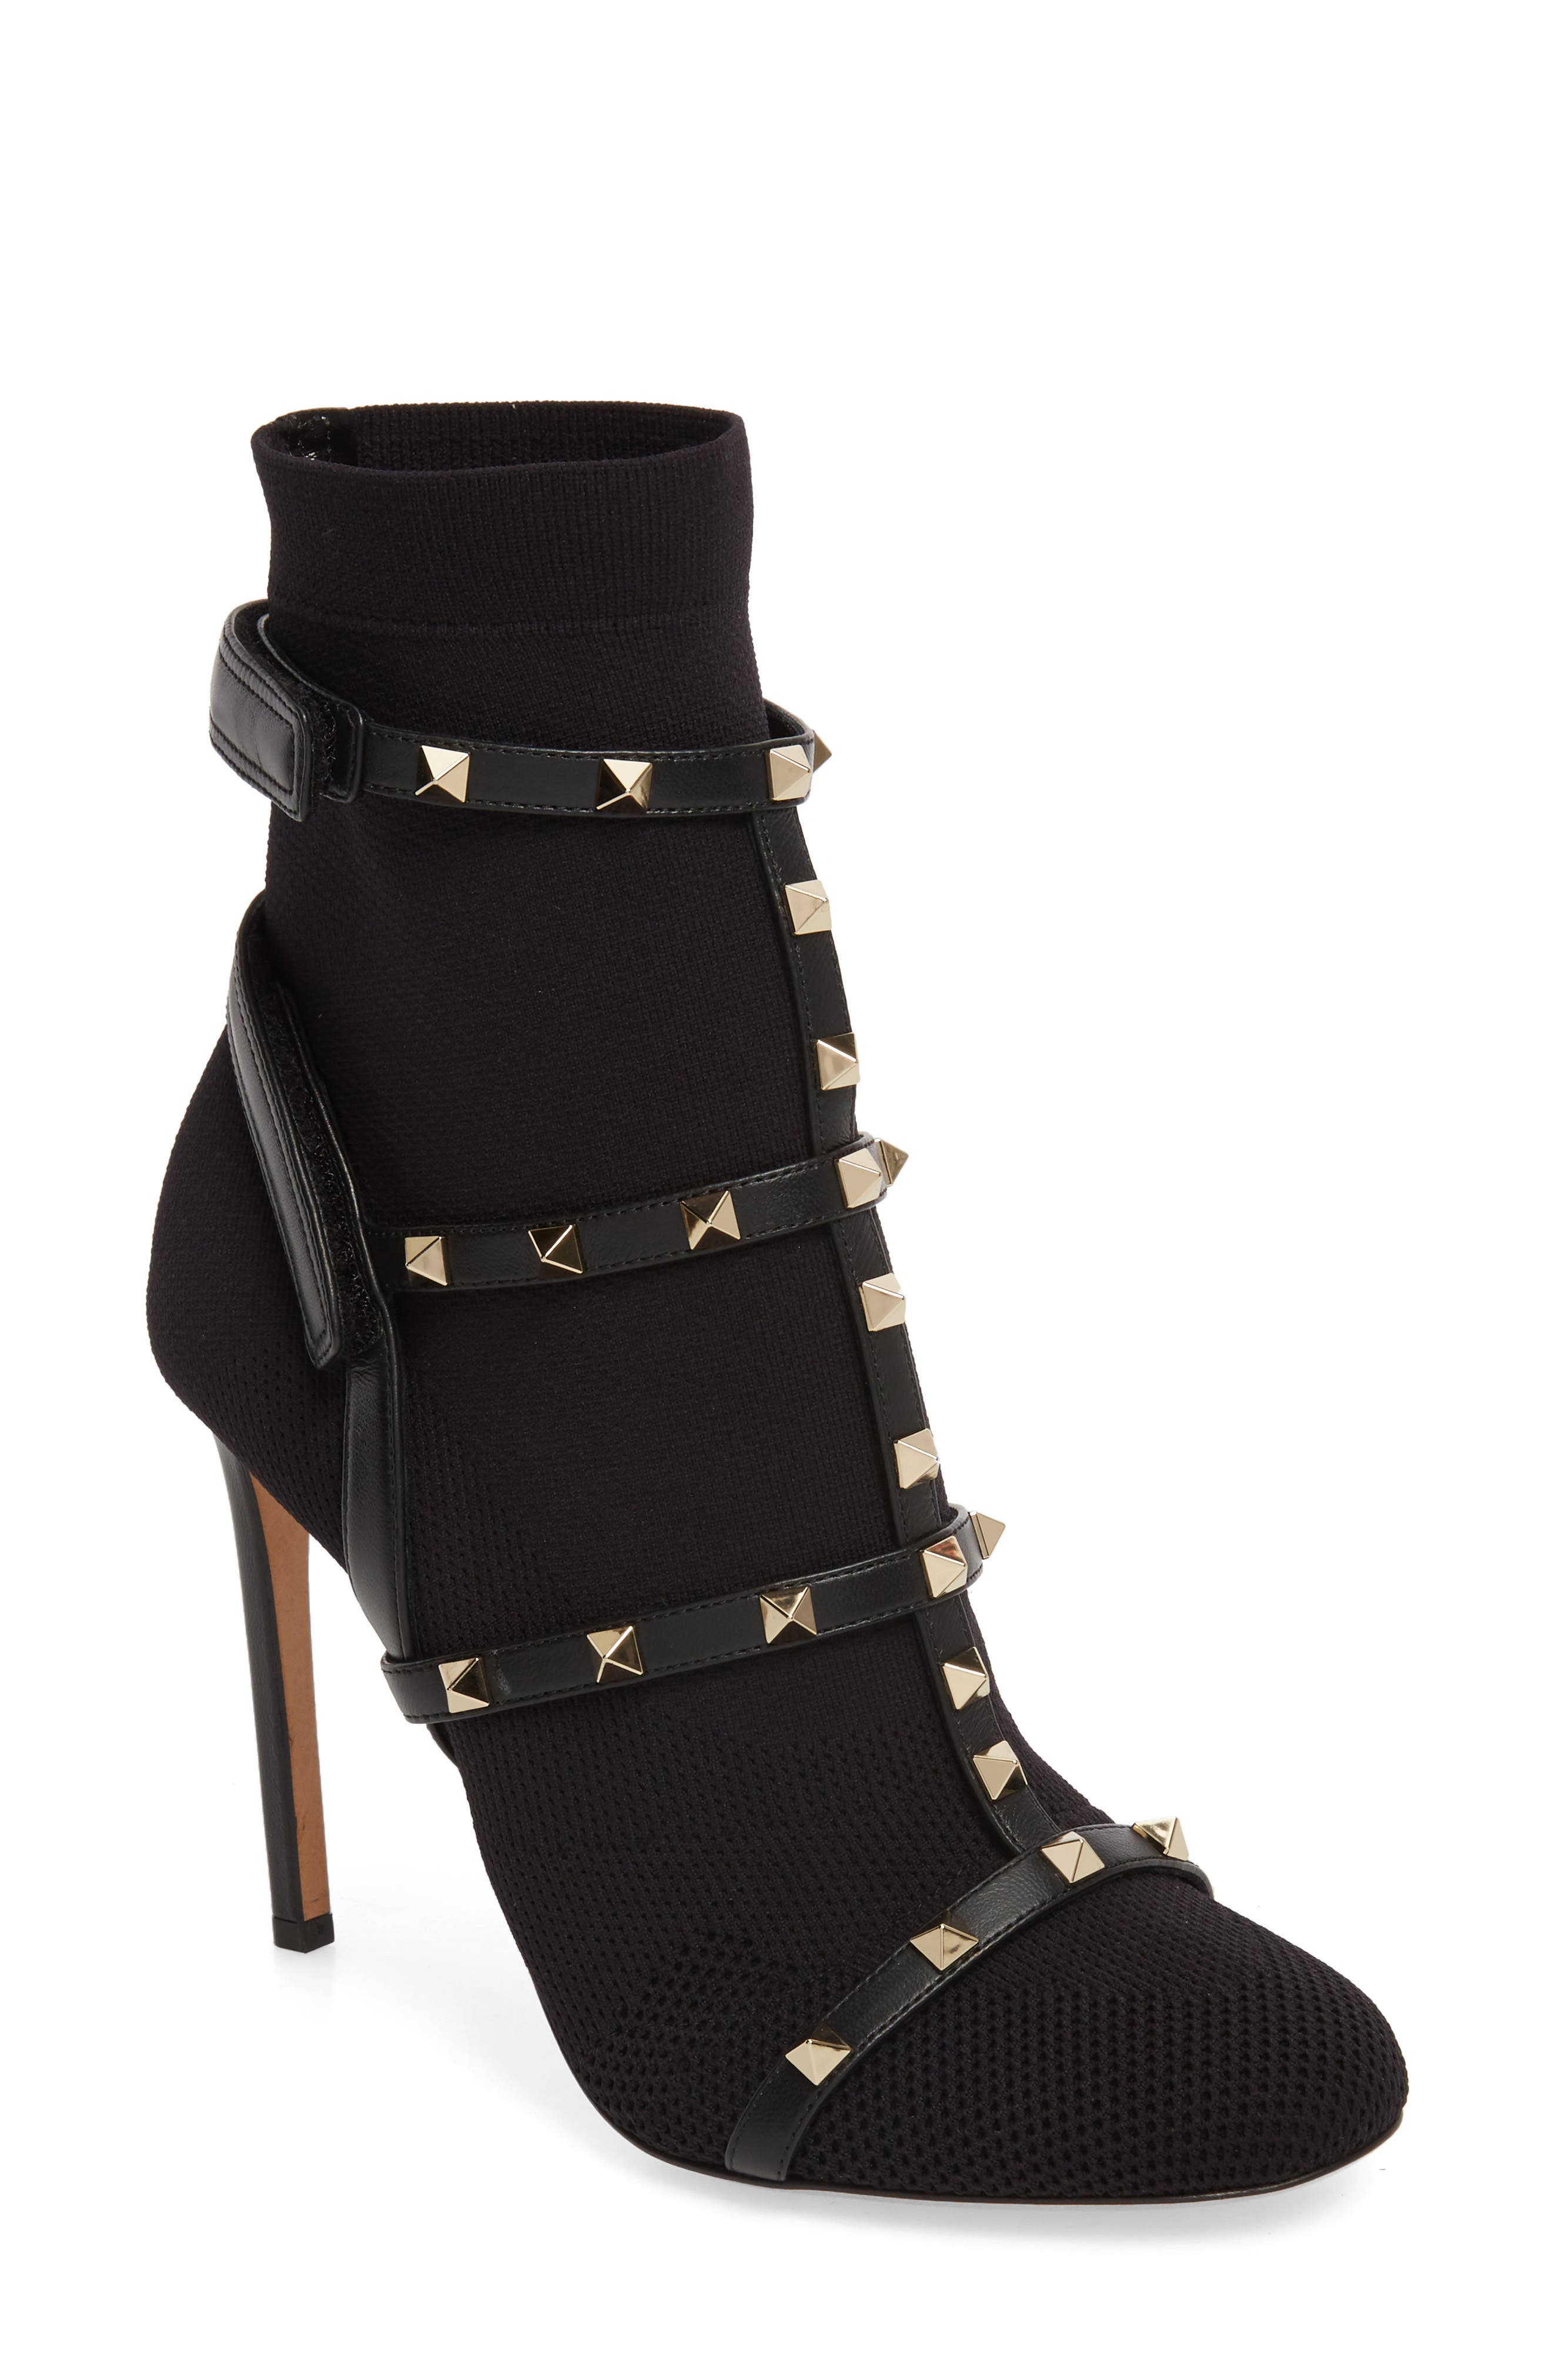 Rockstud Bodytech Bootie,                             Main thumbnail 1, color,                             Black Nappa